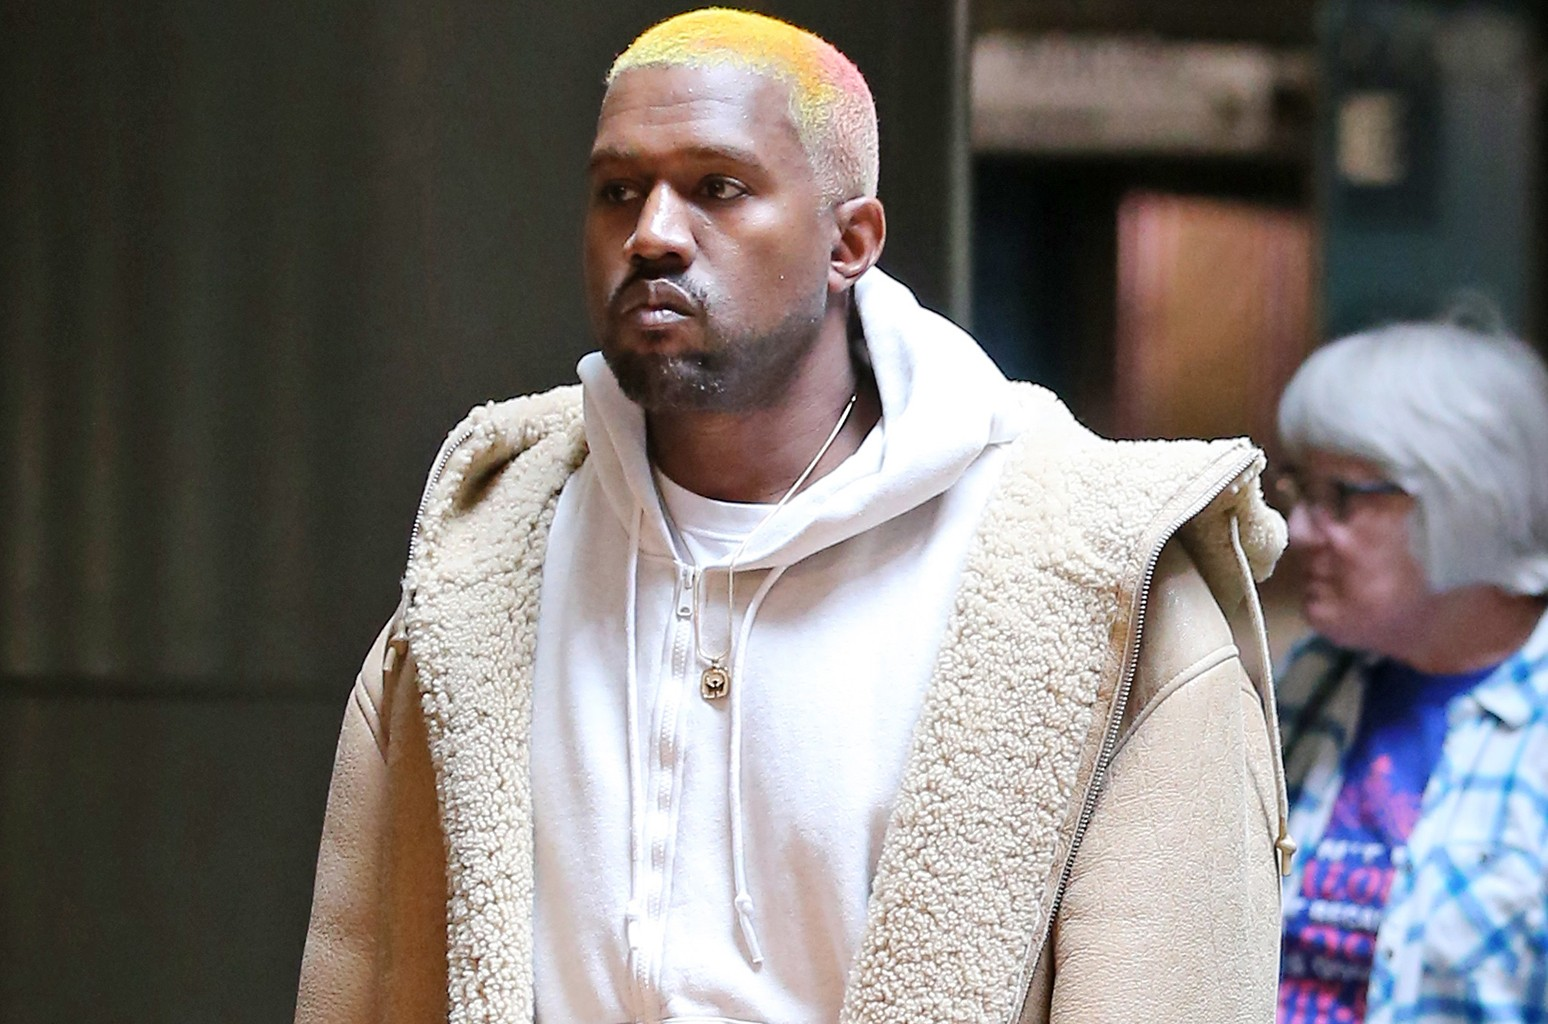 Twitter Reacts To Kanye West S New Hairstyle Billboard Billboard